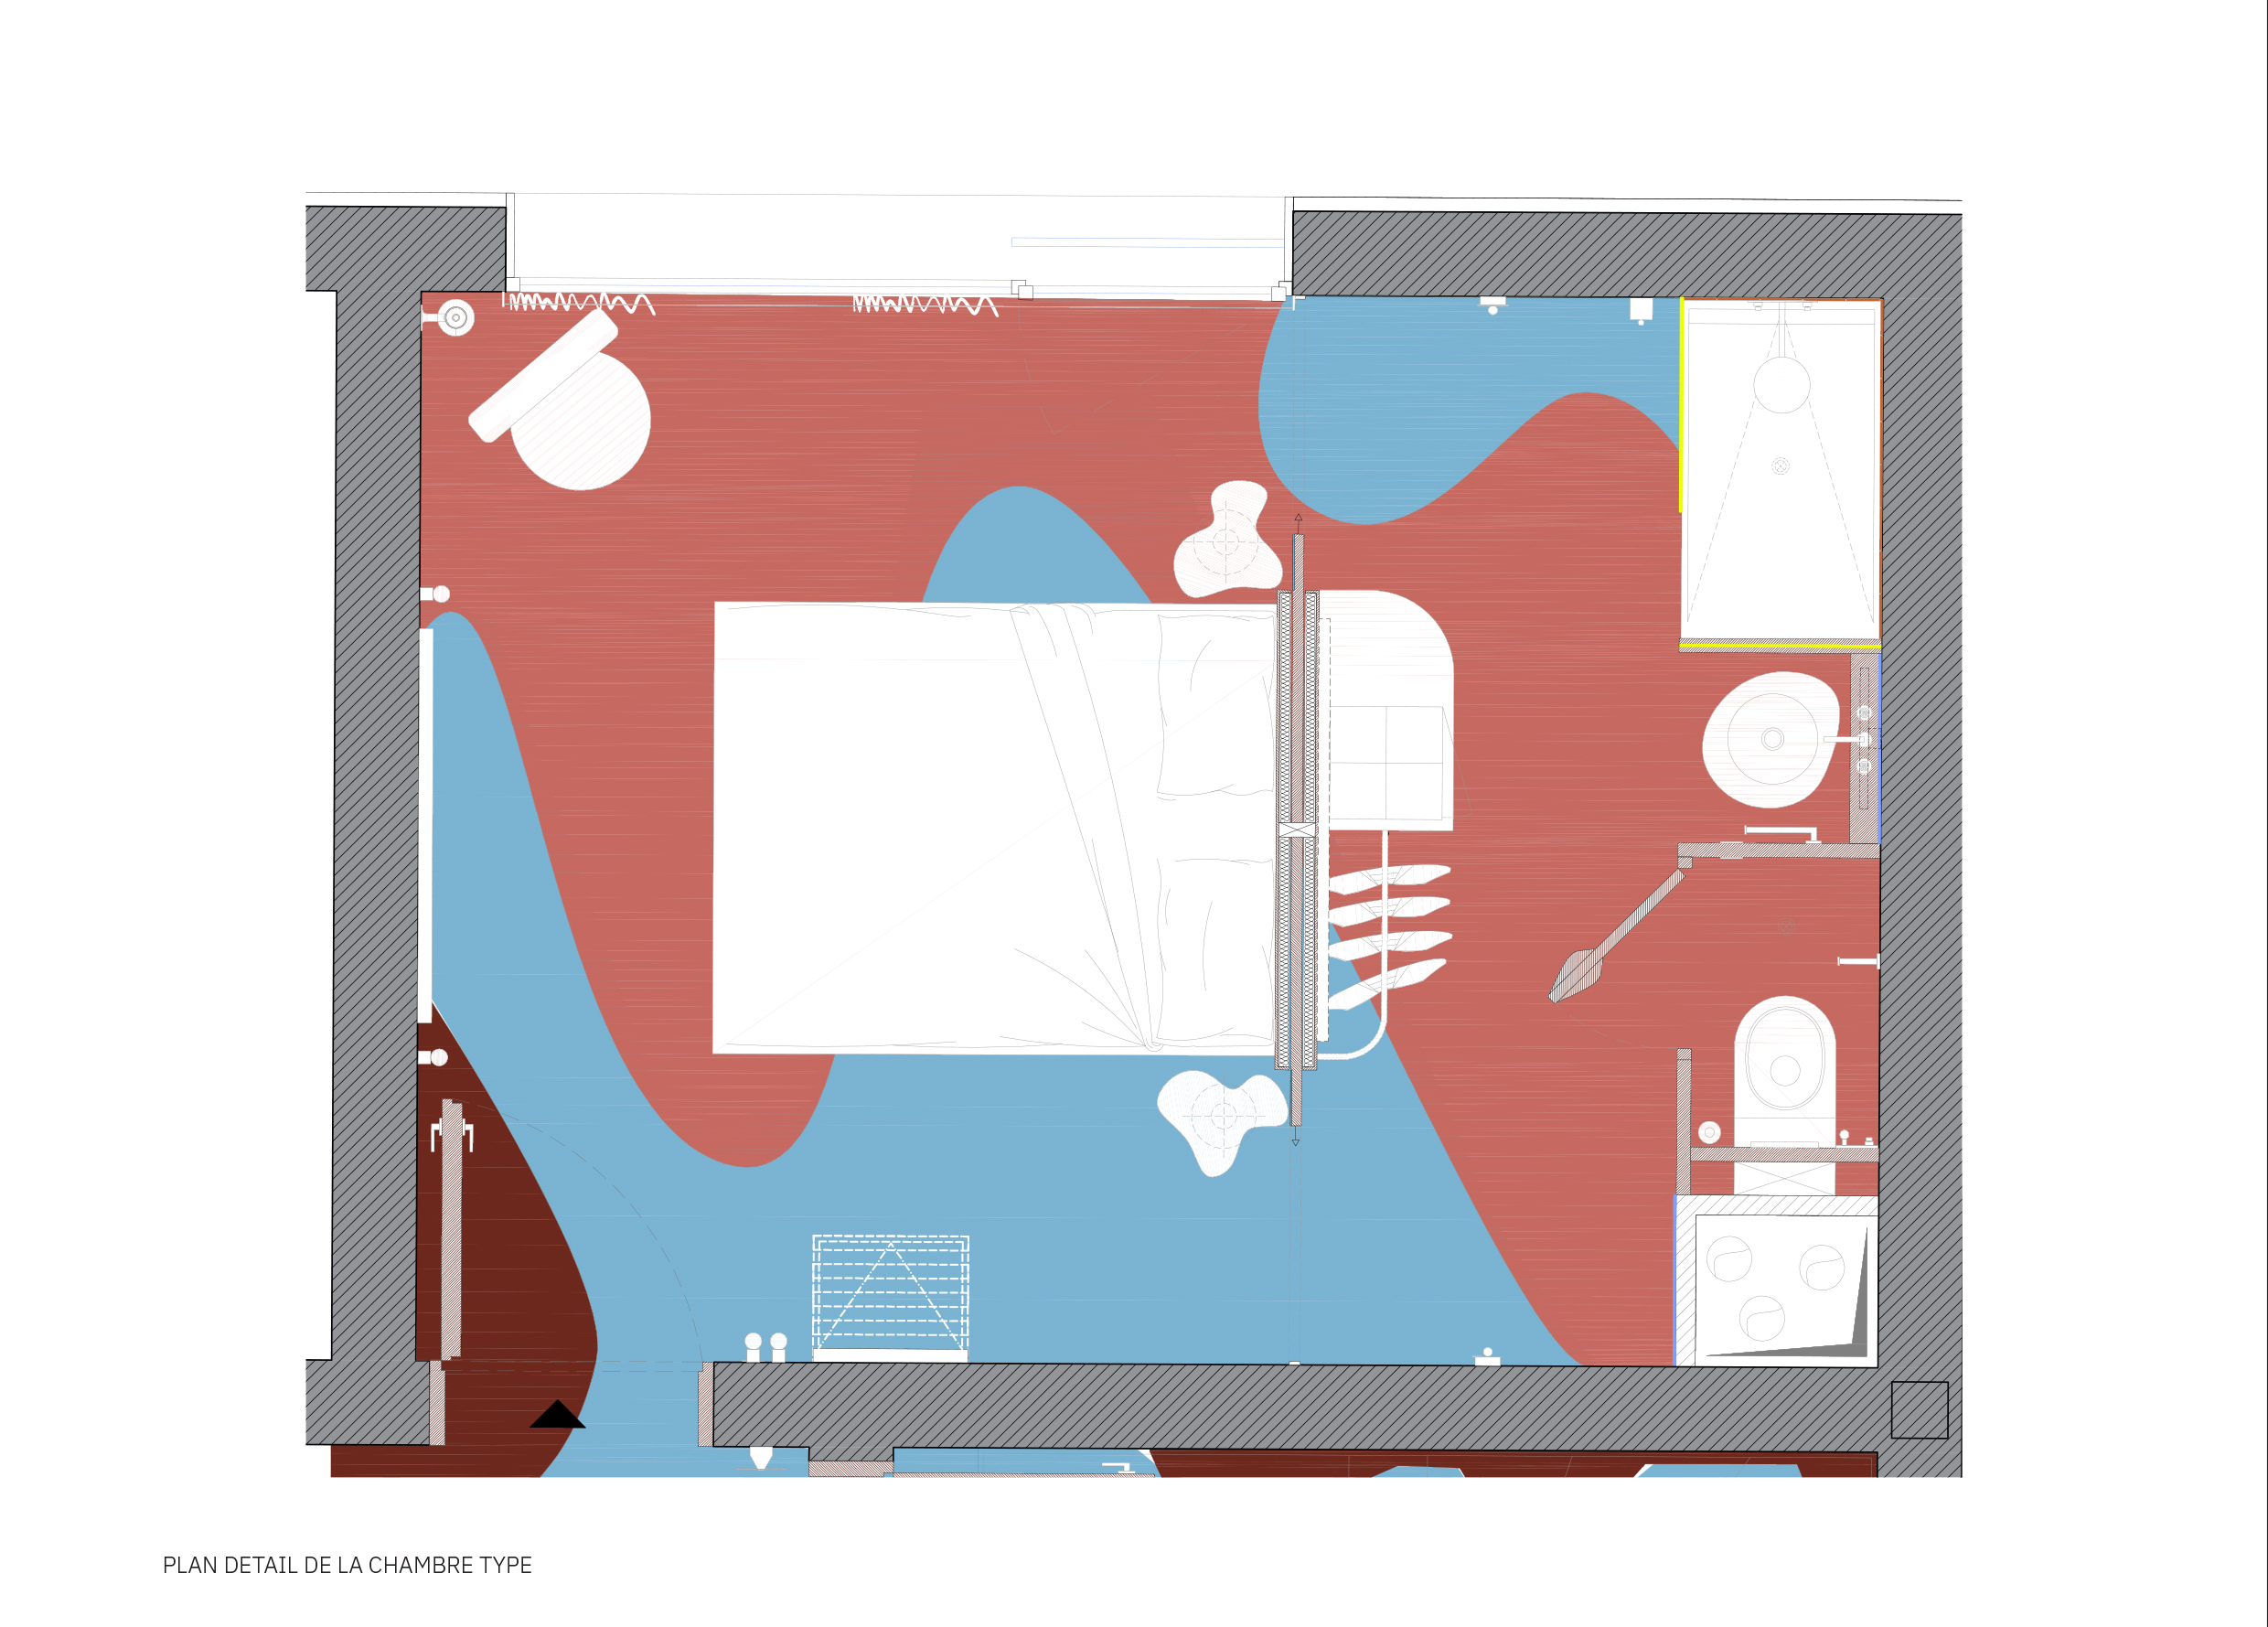 Detail plan of a room type